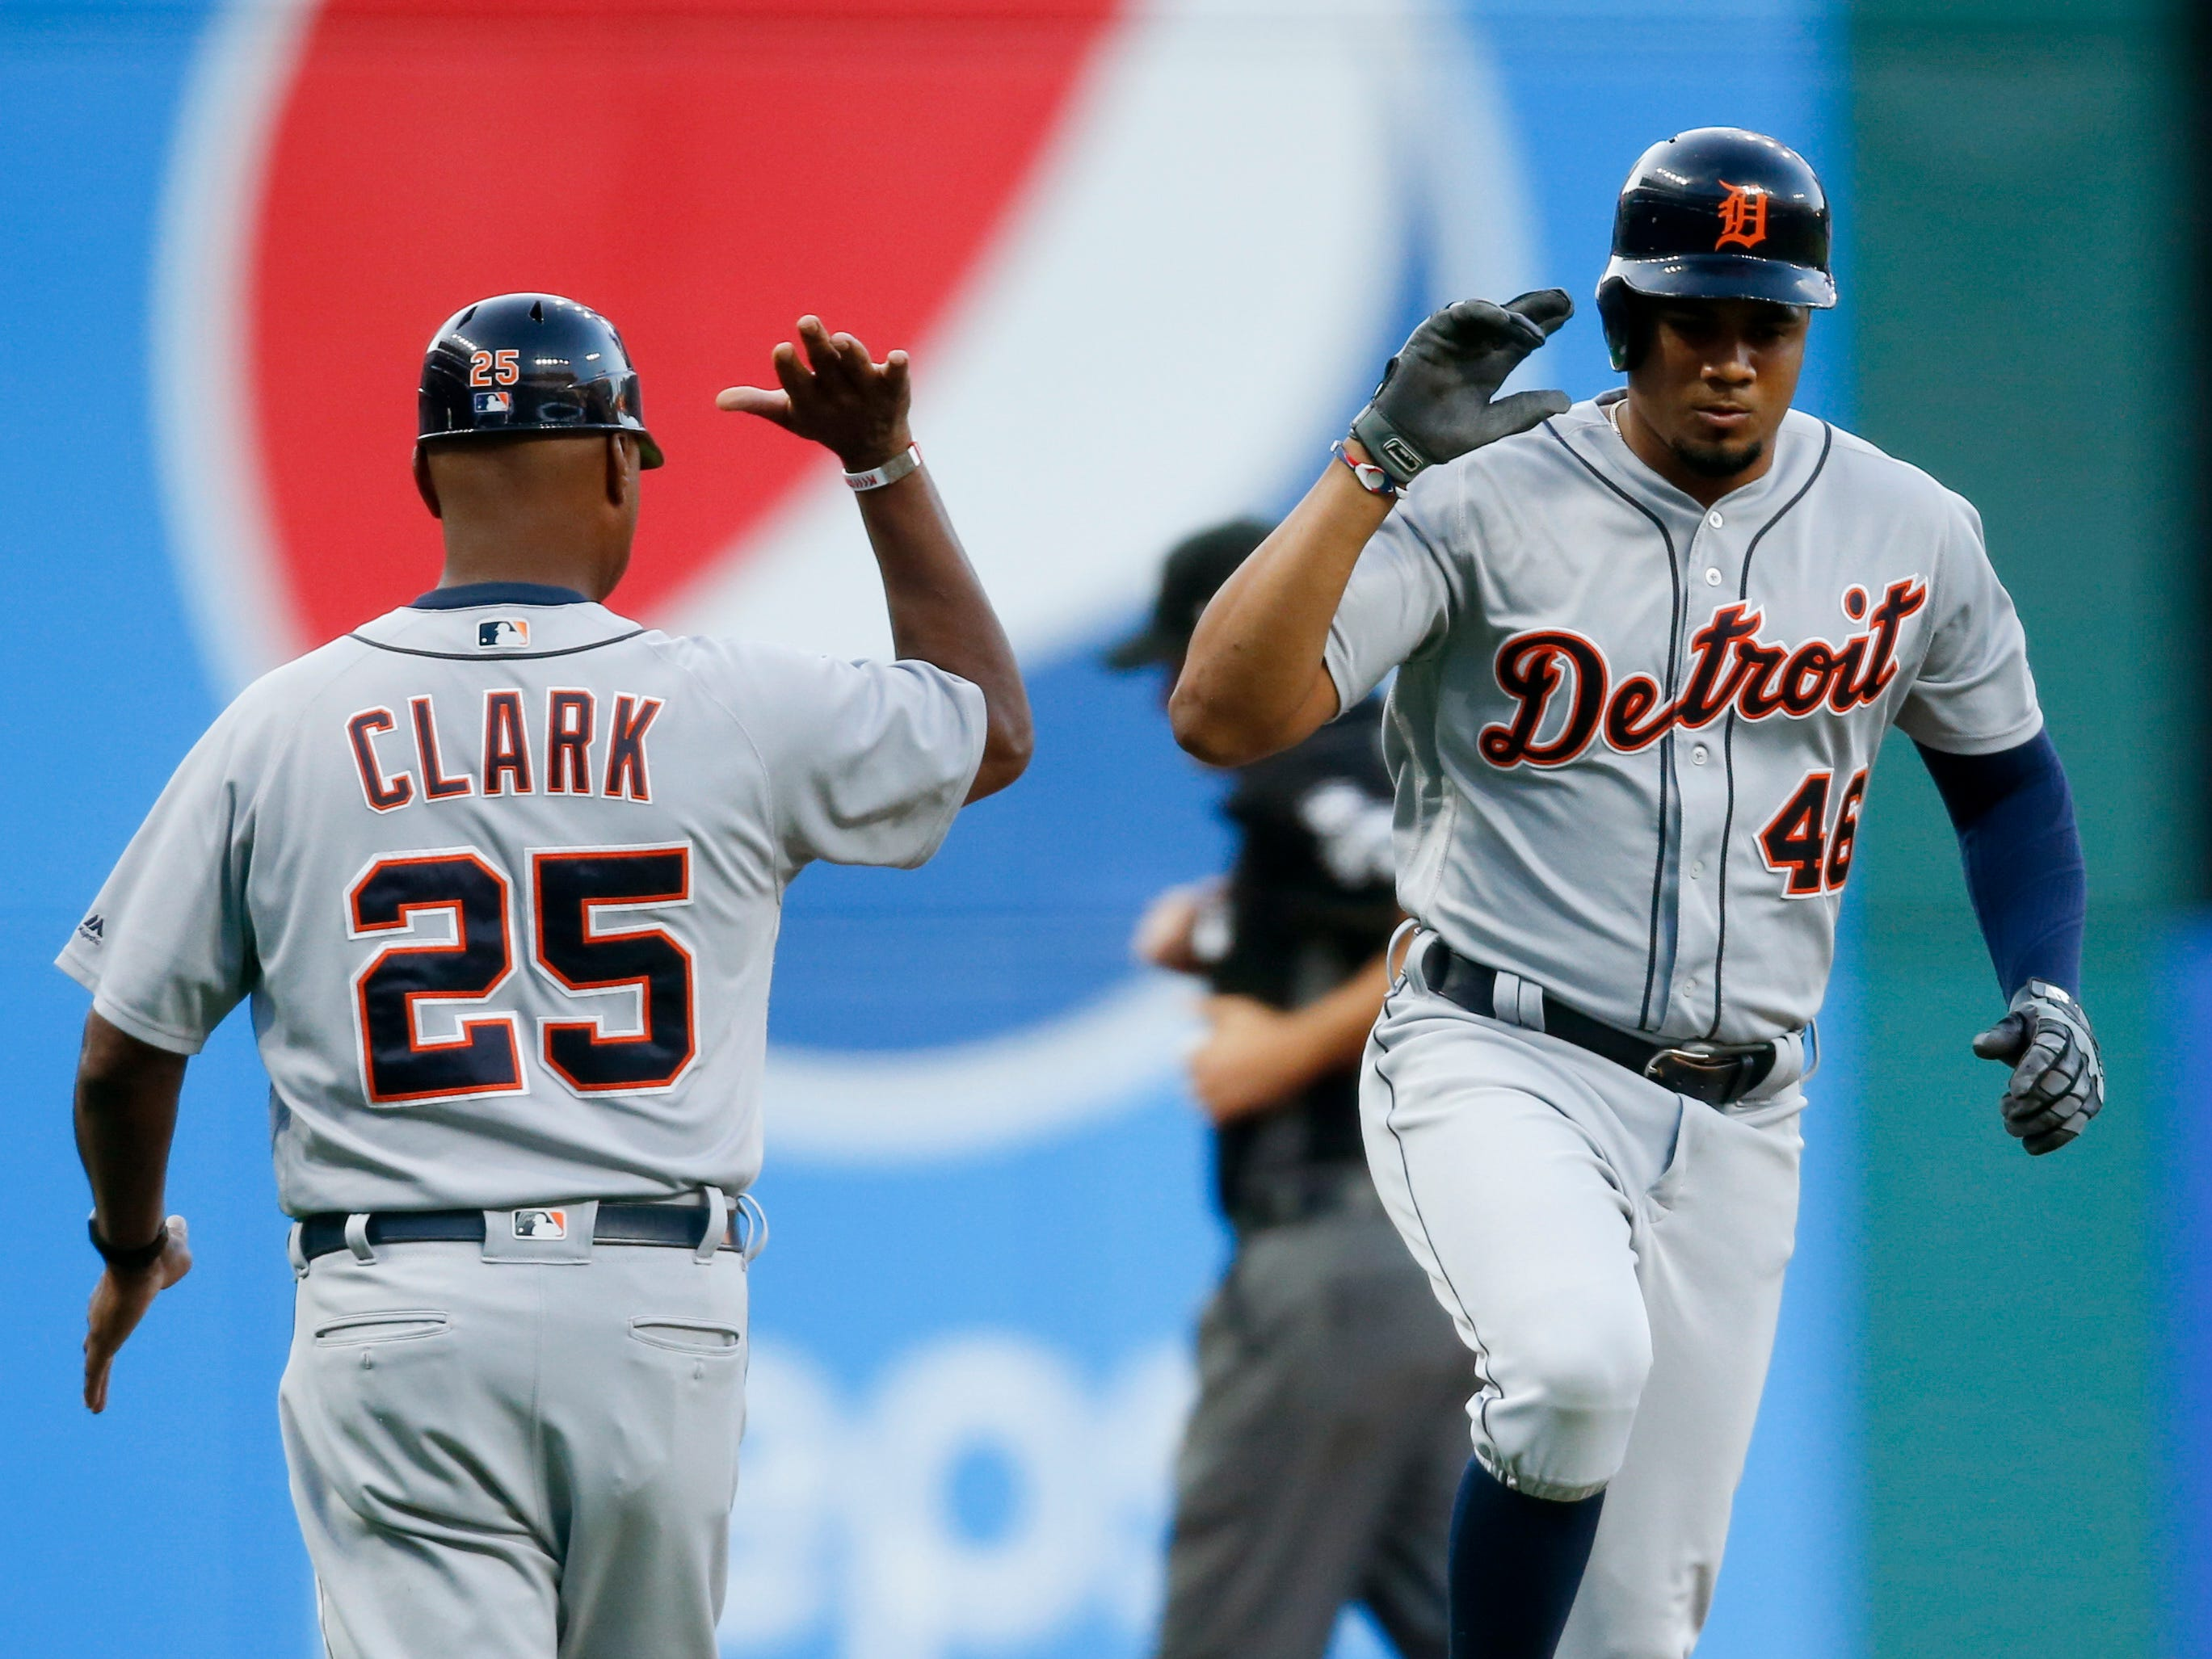 Detroit Tigers' Jeimer Candelario (46) celebrates with third base coach Dave Clark (25) after hitting a solo home run off Cleveland Indians starting pitcher Josh Tomlin during the first inning of a baseball game, Friday, Sept. 14, 2018, in Cleveland.